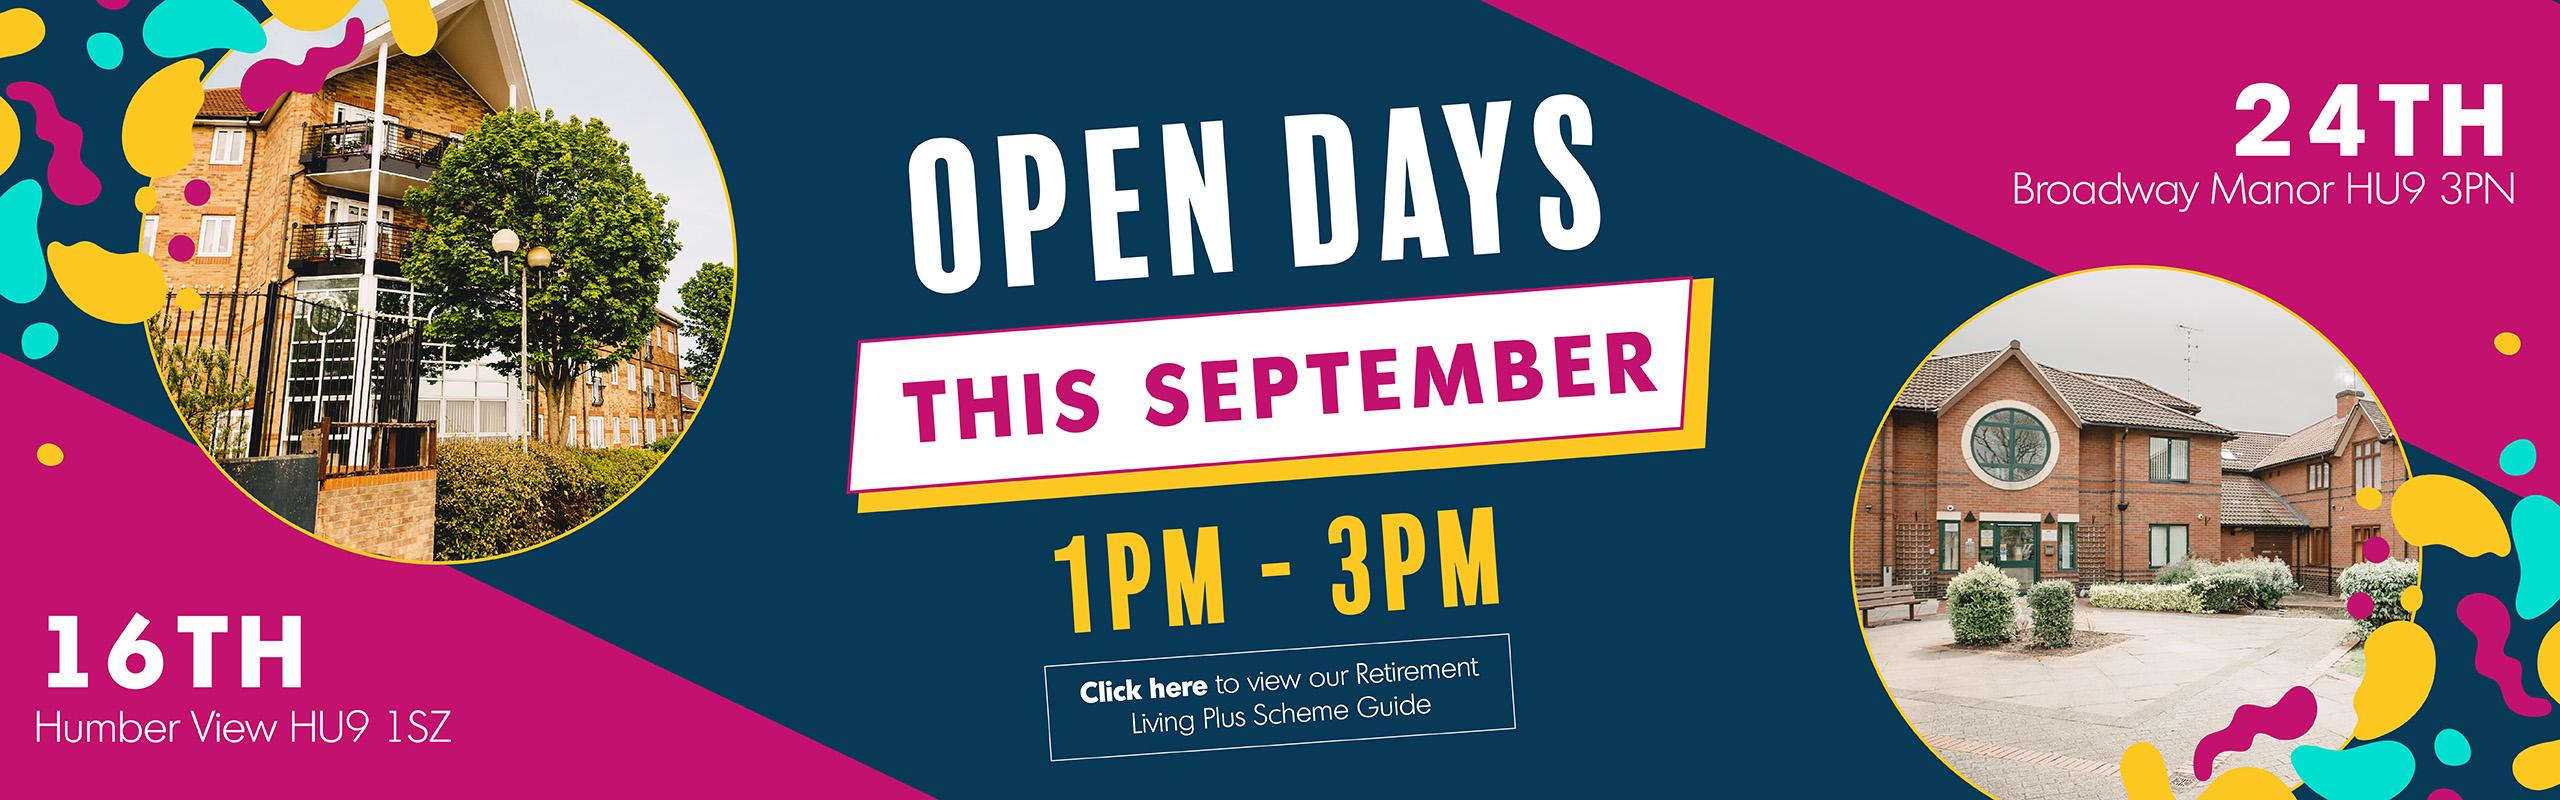 Opendays_webBanners_B2